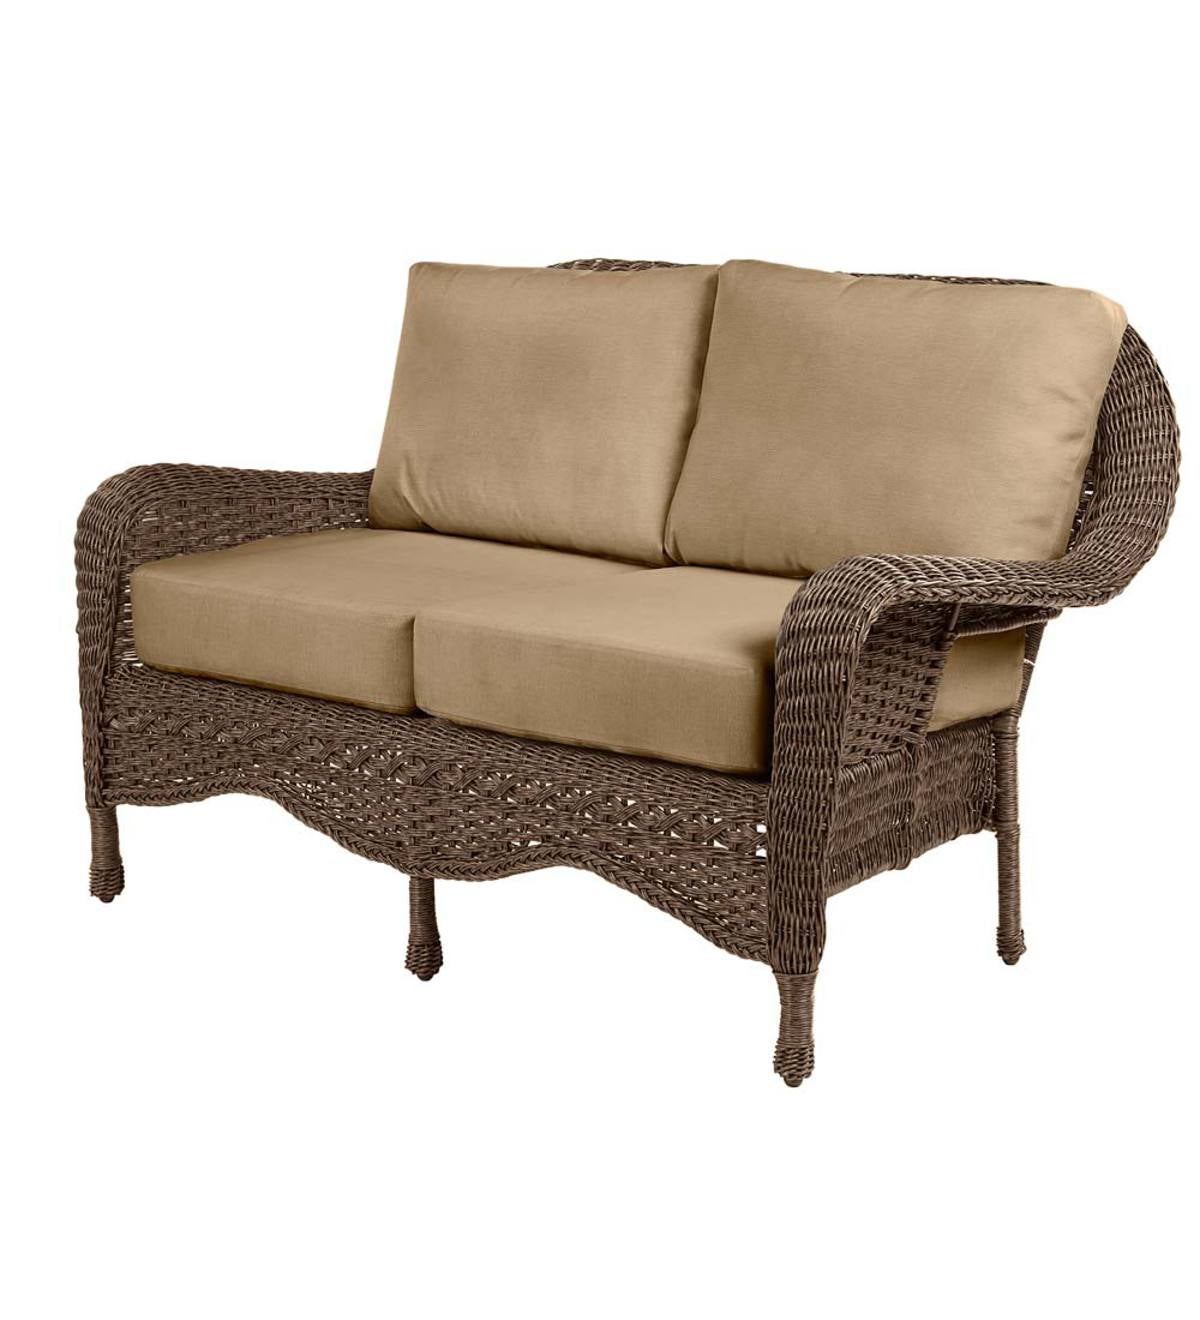 Prospect Hill Outdoor Wicker Deep Seating Love Seat with Cushions